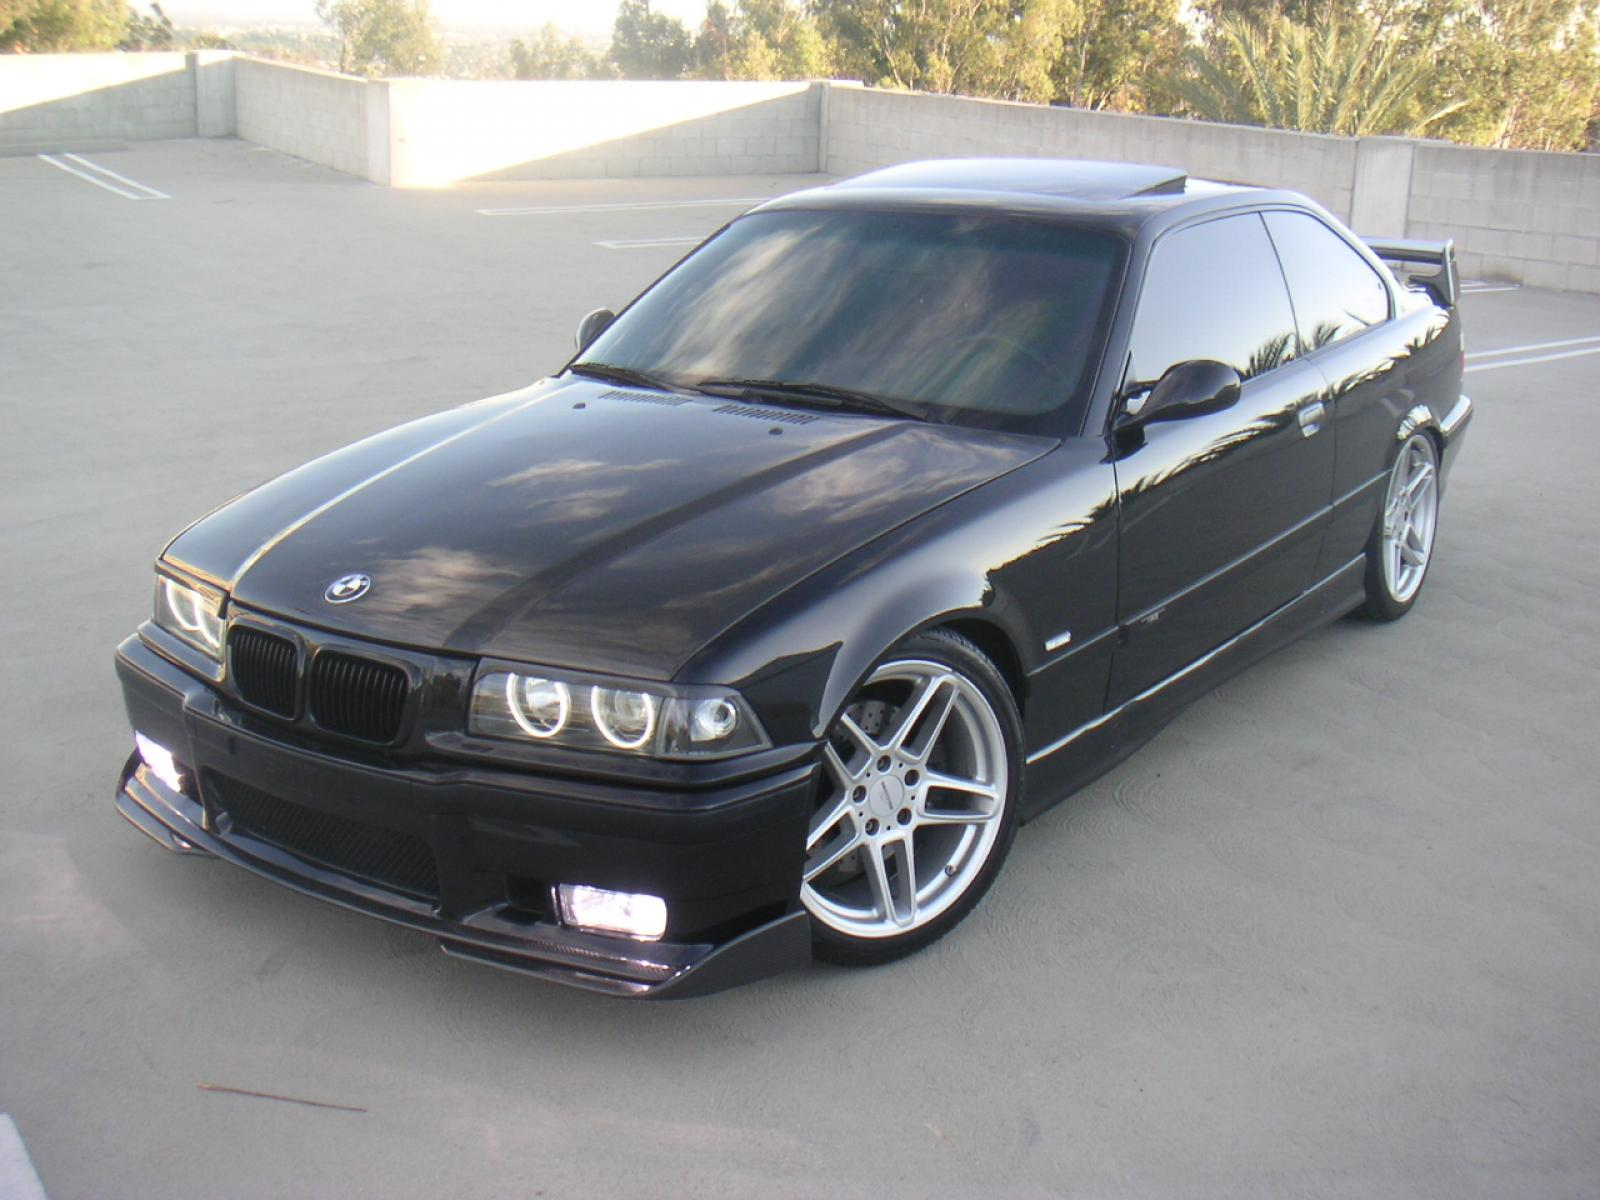 1997 Bmw M3 Information And Photos Zombiedrive Z4 Radio Wiring 800 1024 1280 1600 Origin